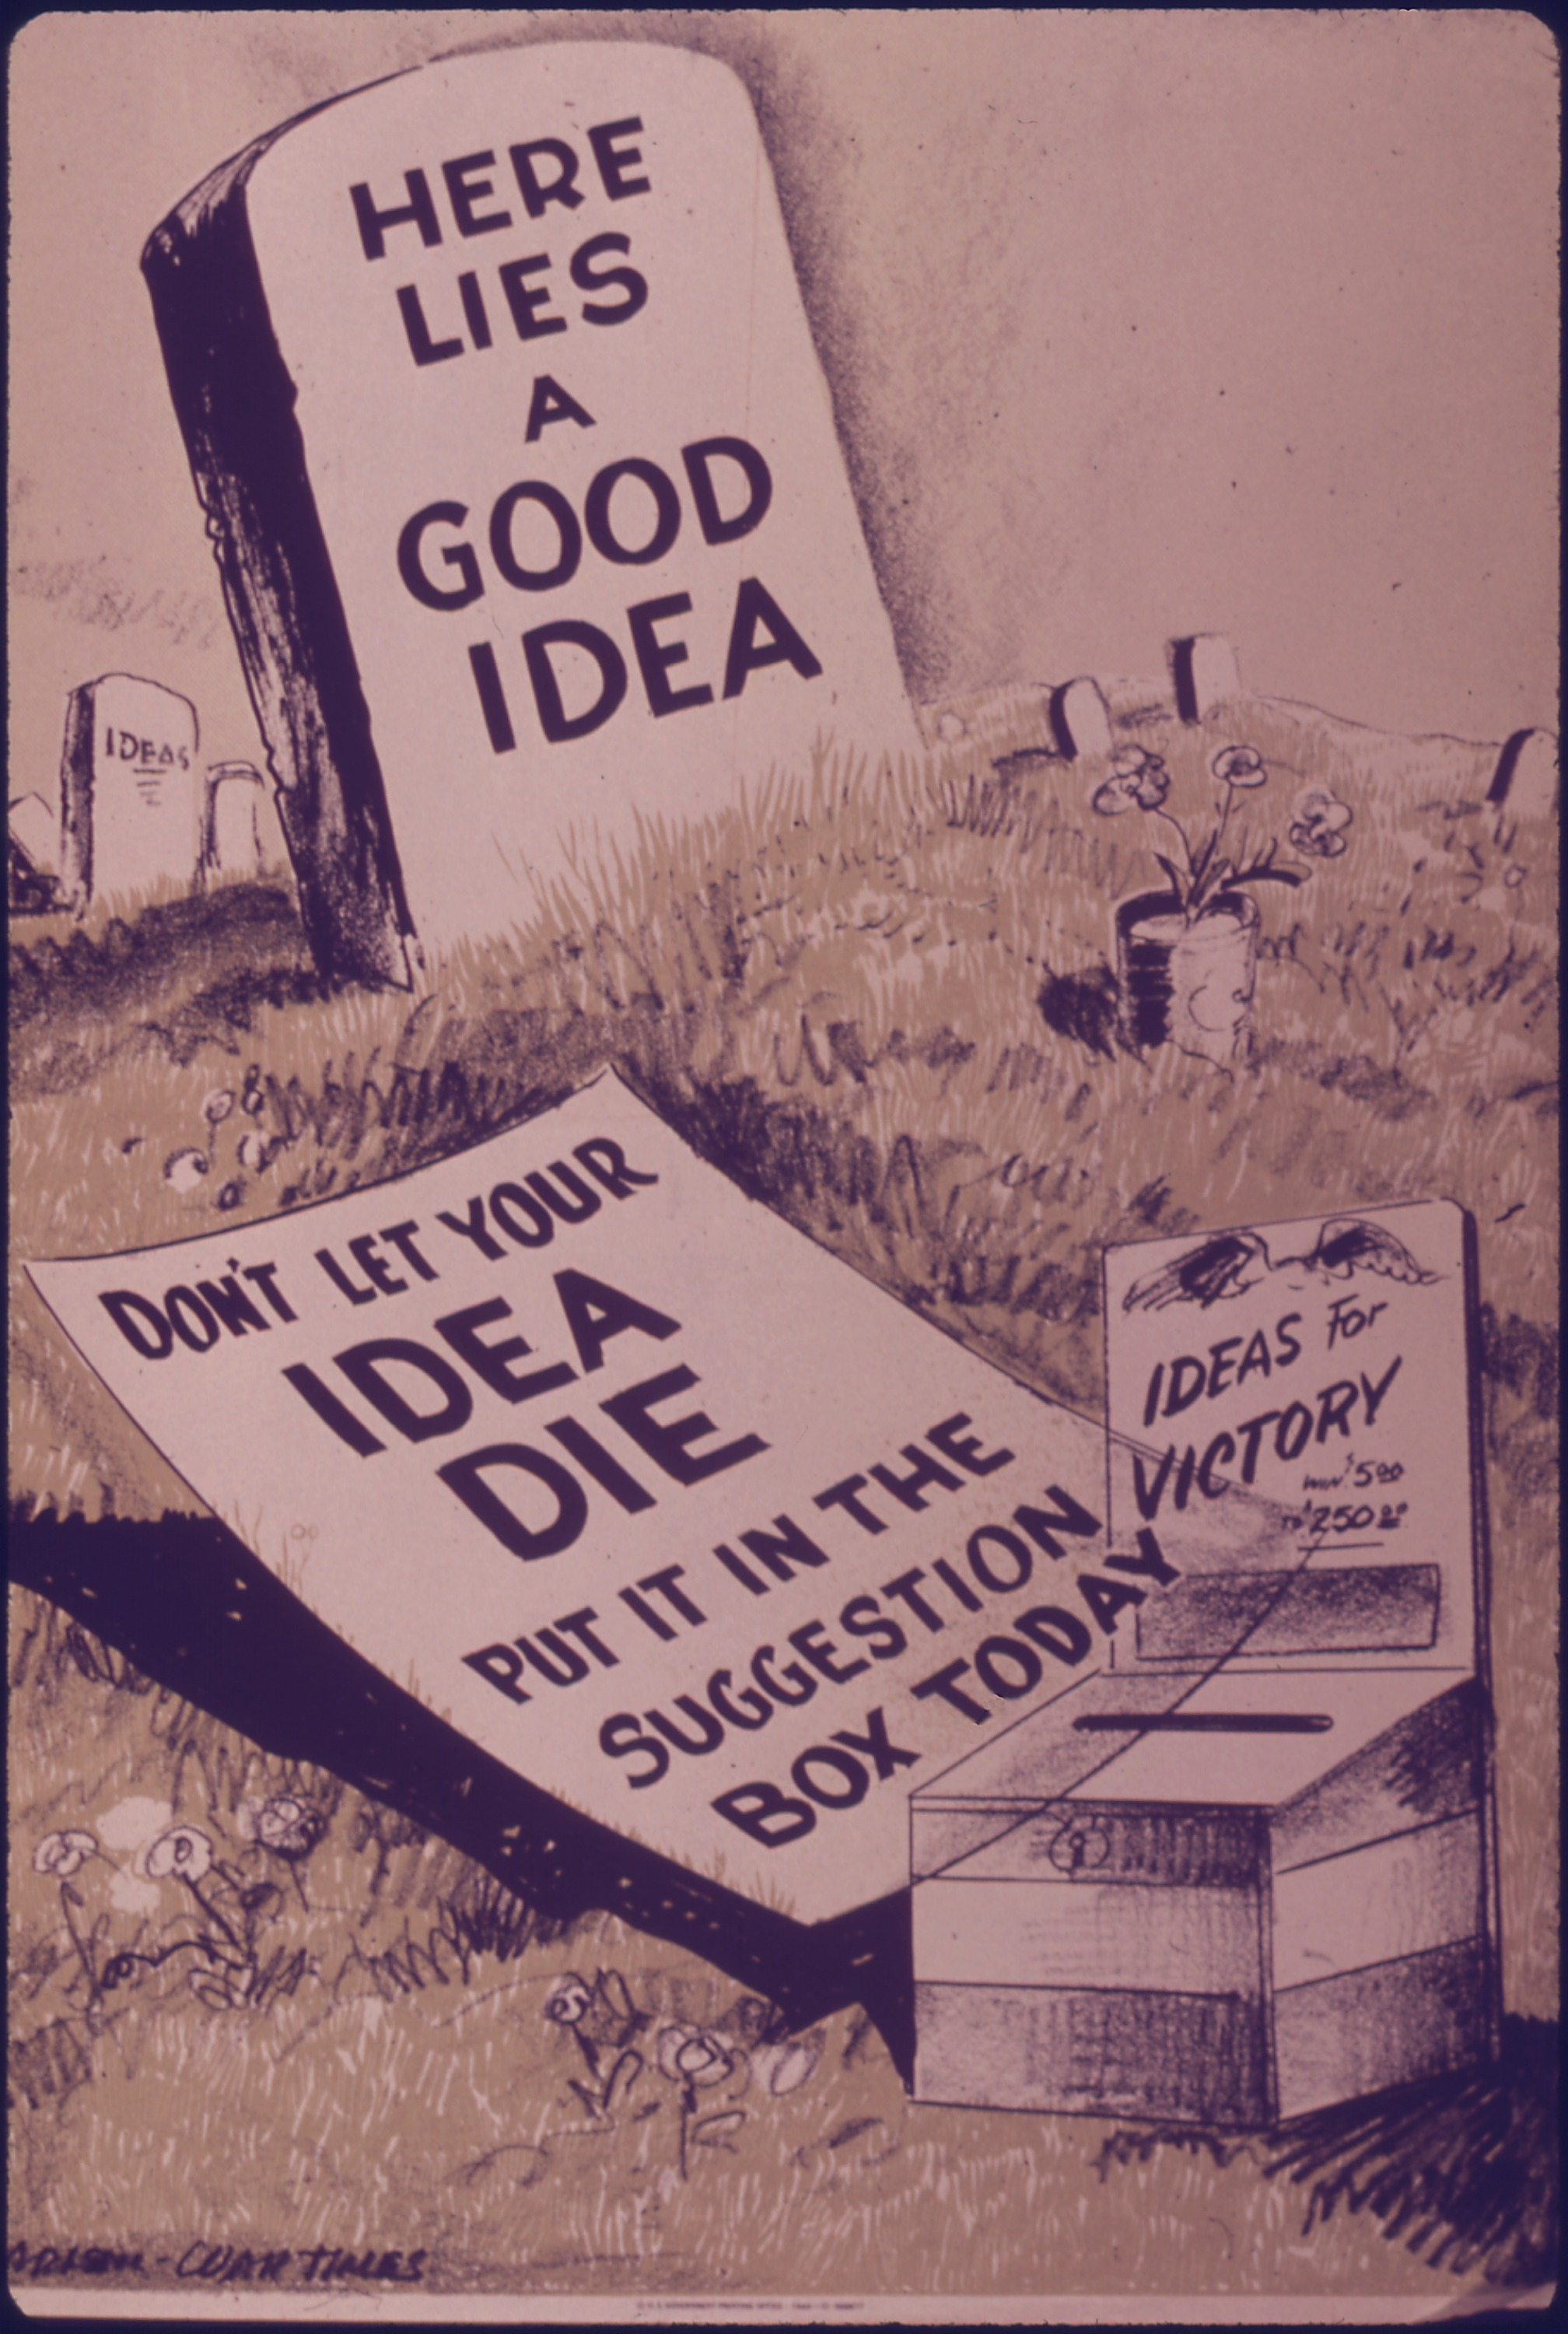 """Here Lies a Good Idea. Don't Let Your Id..."